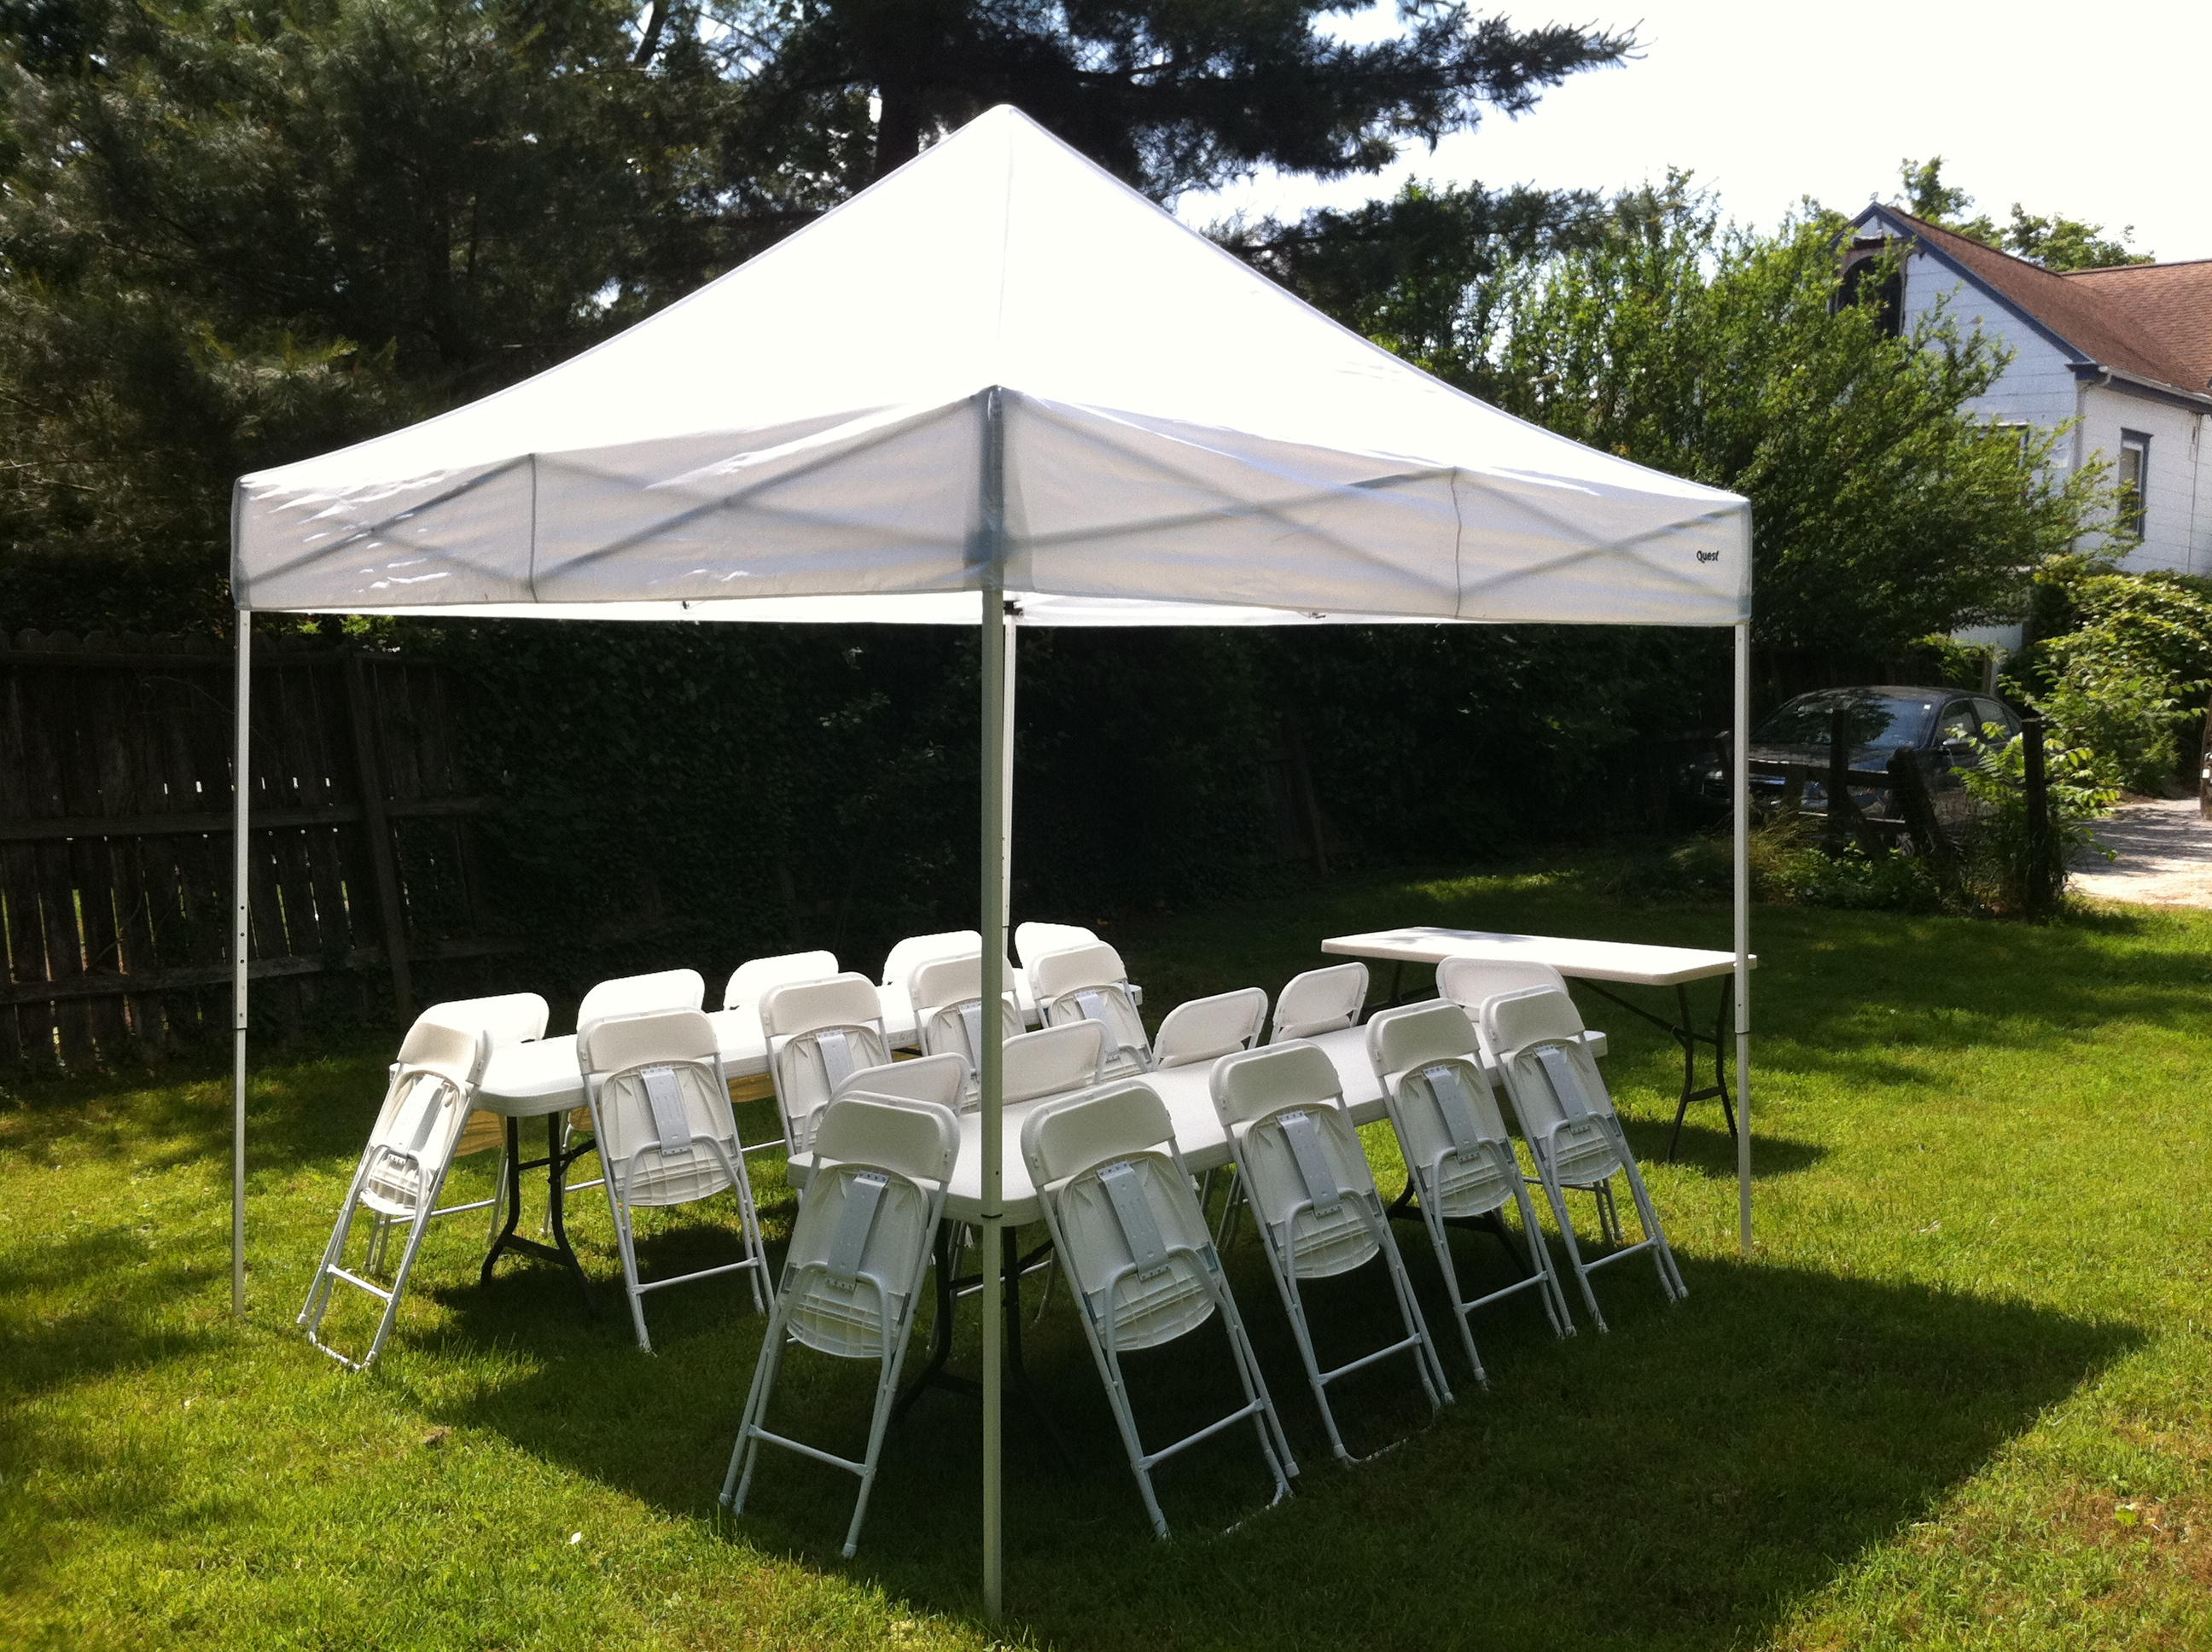 10u2032 x 10u2032 Pole Tent & 10u2032 x 10u2032 Pole Tent » Rainy Day Party Rentals